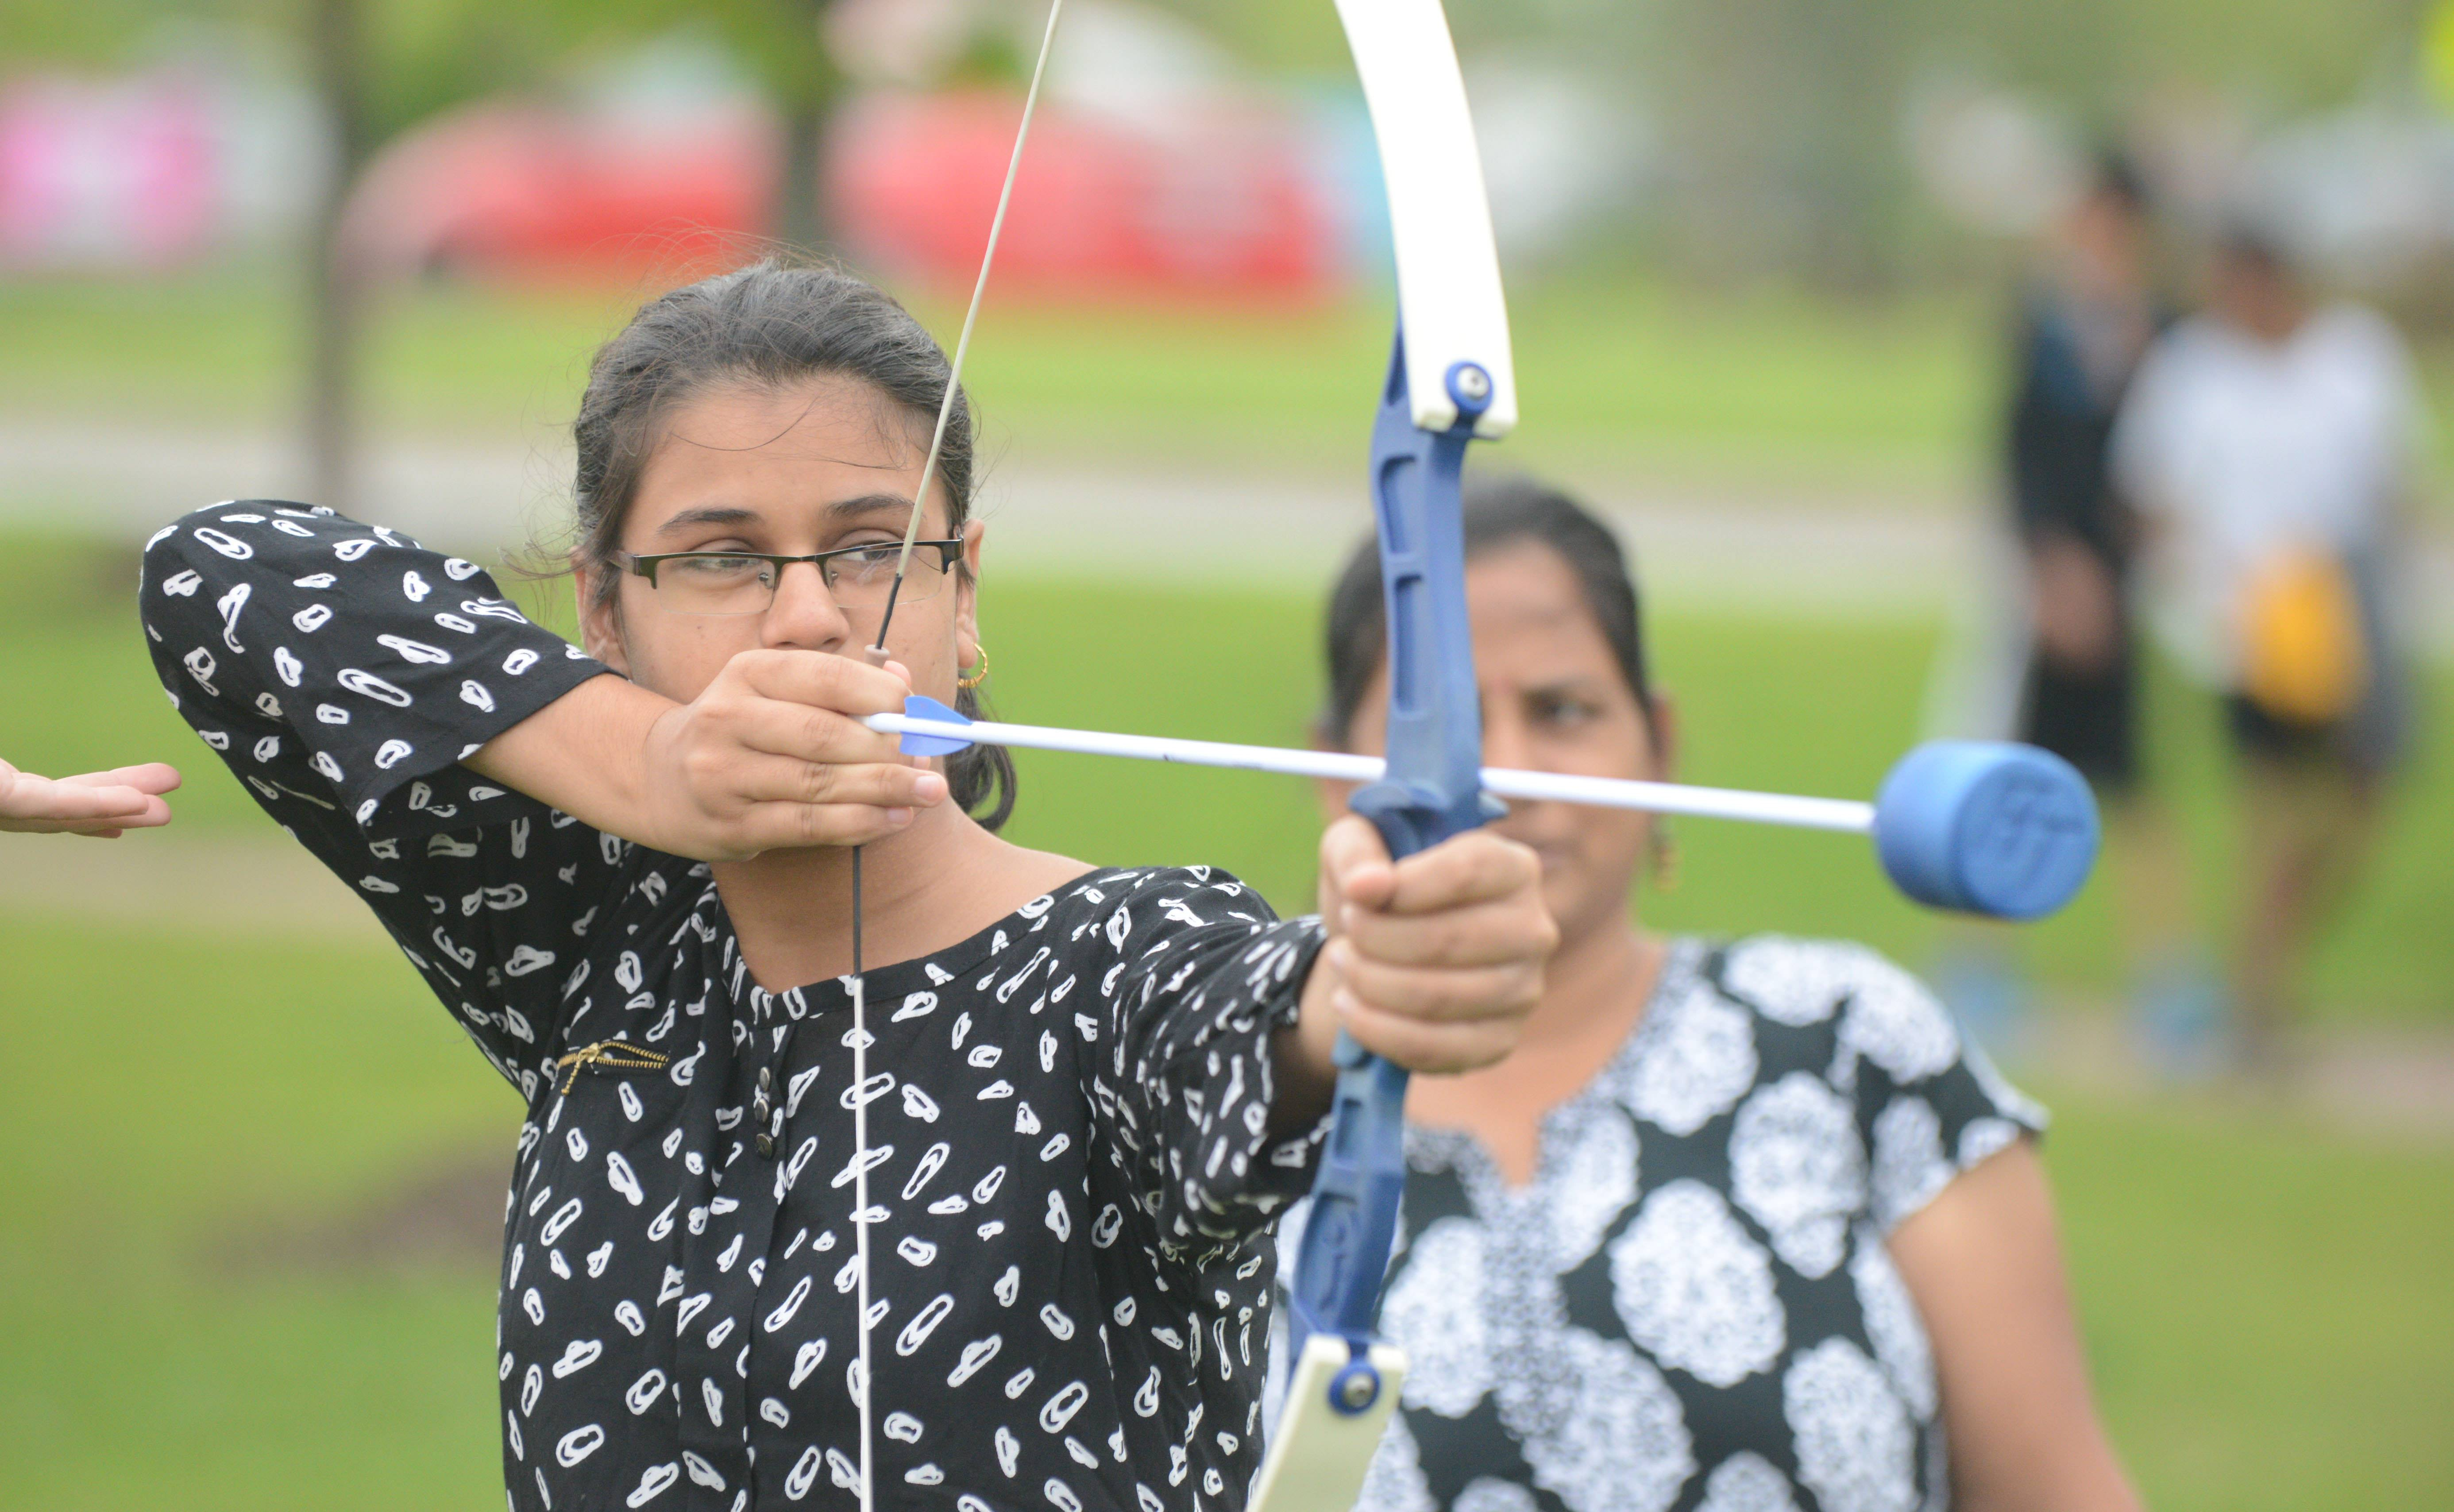 Sonal Chouhan, 18, of Naperville, tries her hand at archery at the JustPlay! Sports and Recreation Festival Saturday in Carol Stream.